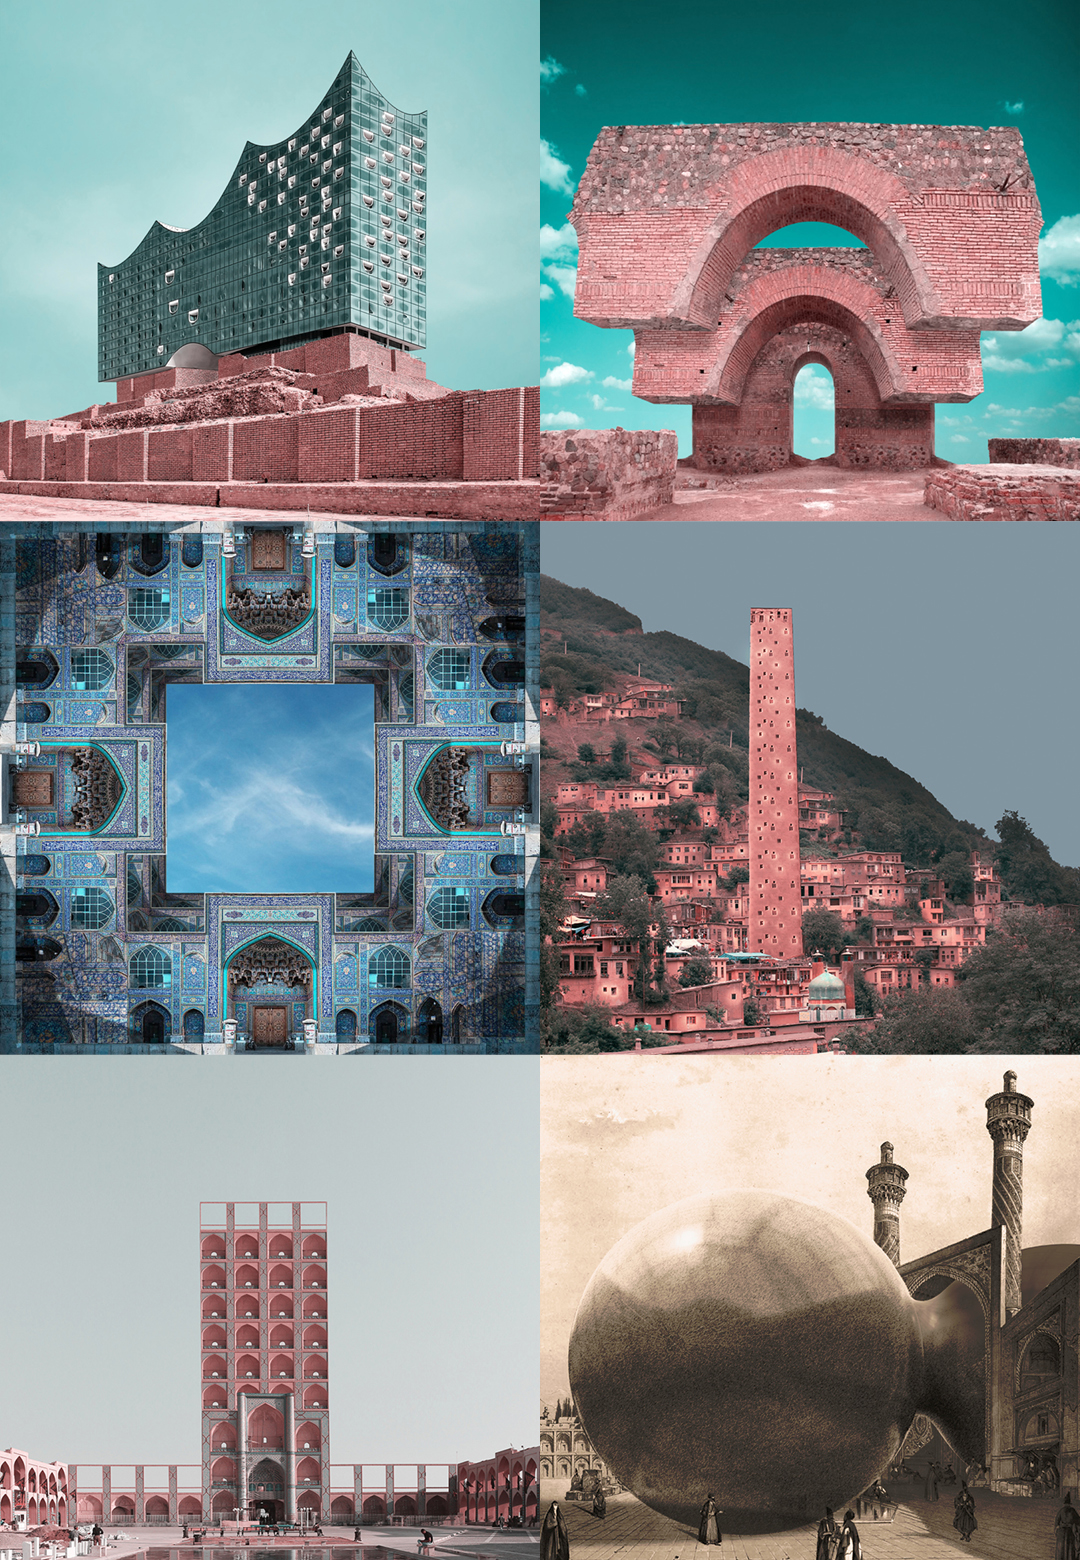 The series 'Retrofuturism' that merges contemporary architecture with ancient sites in Iran | Mohammad Hassan Forouzanfar | Retrofuturism | STIRworld